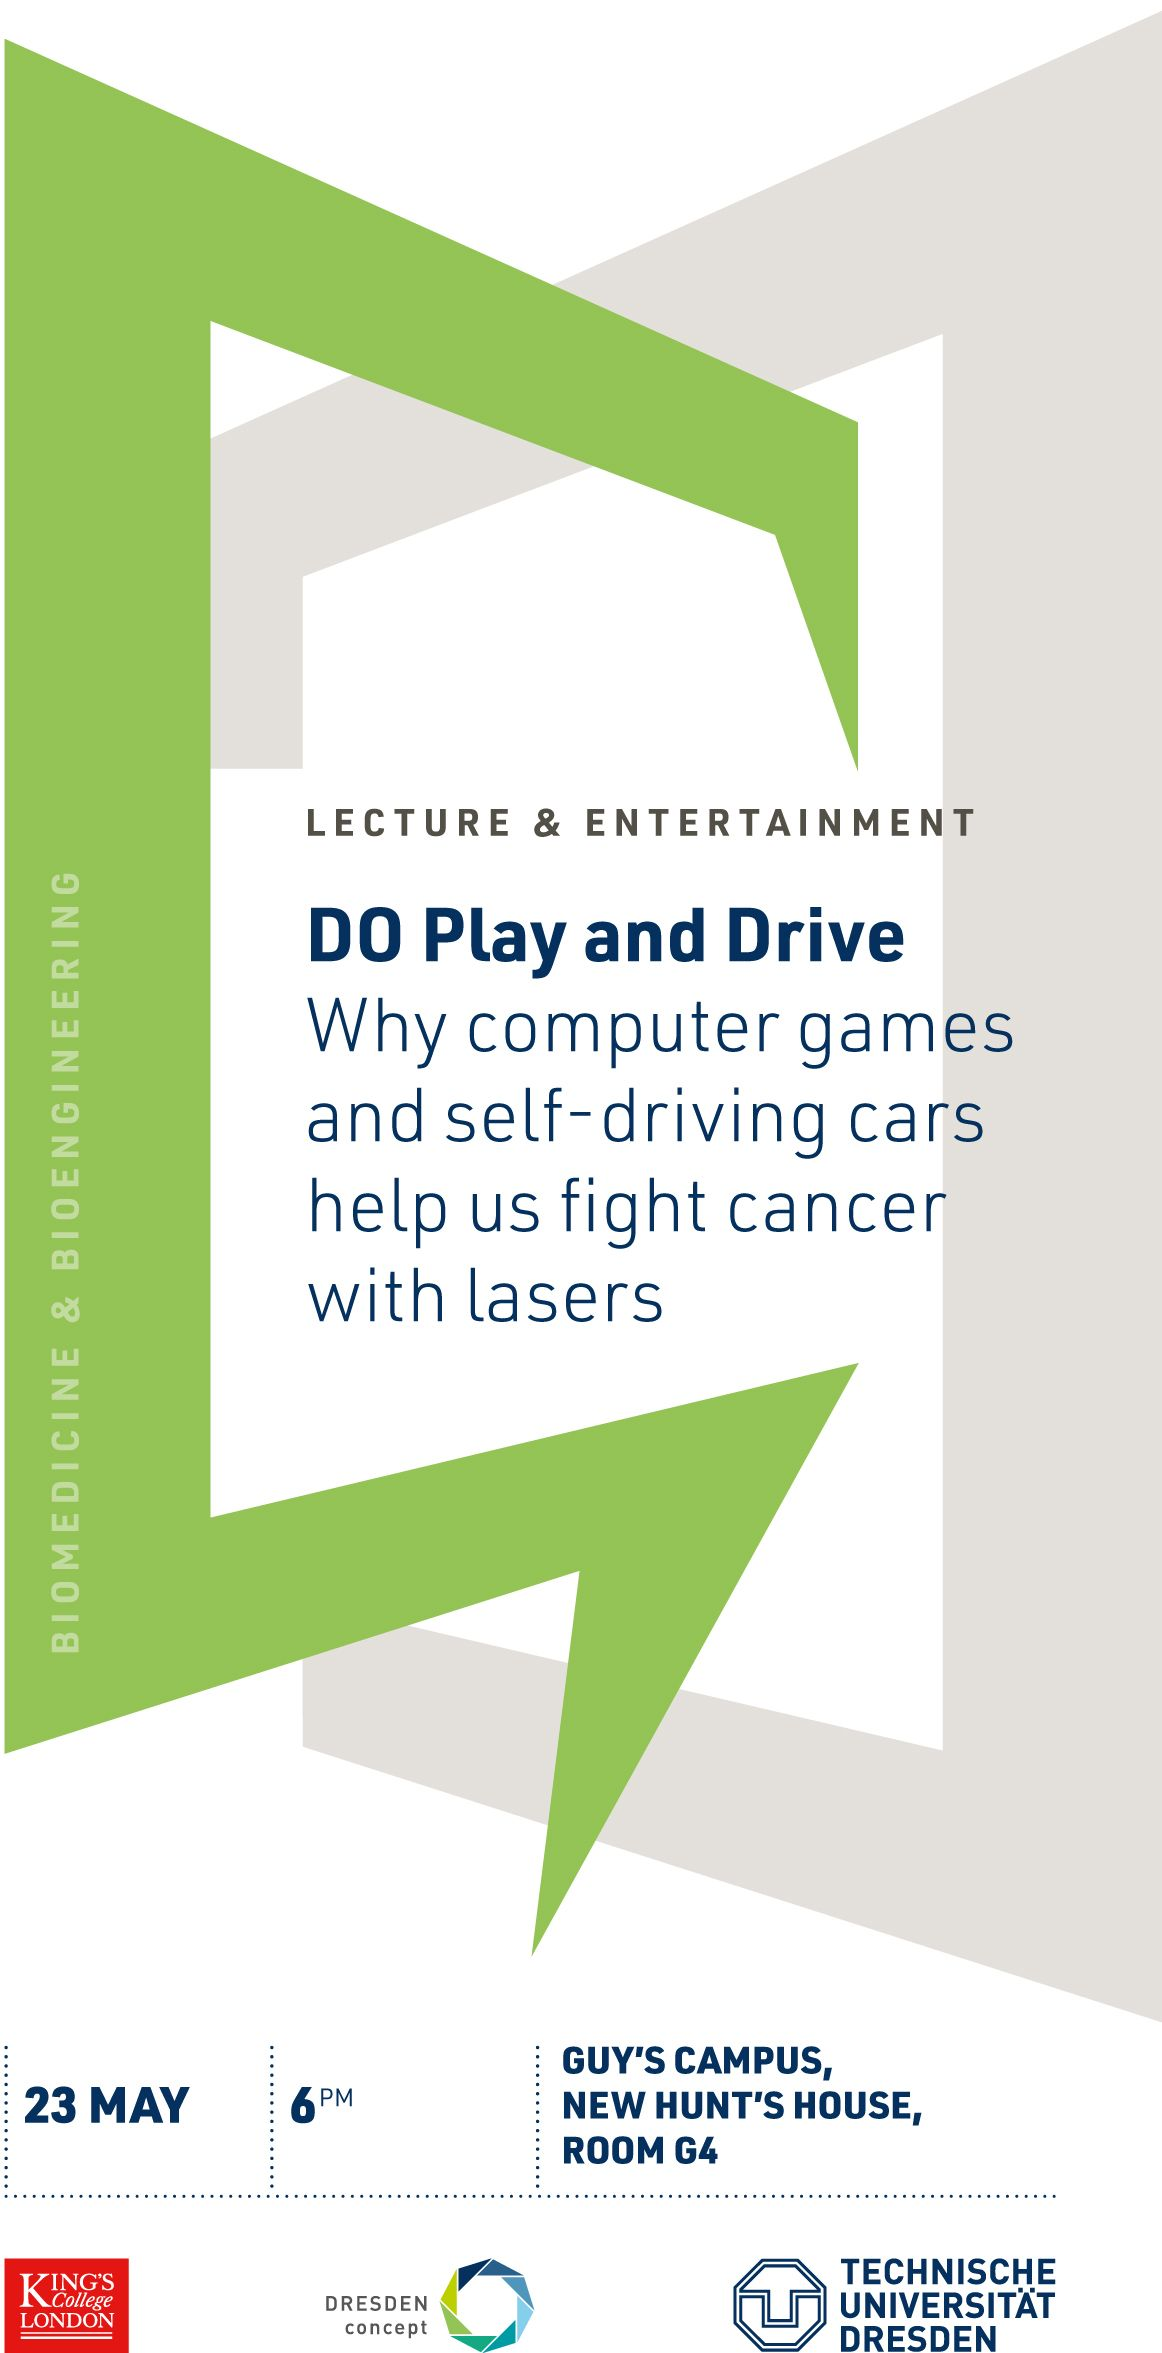 DO play and drive - Why computer games and self-driving cars help us fight cancer with lasers.